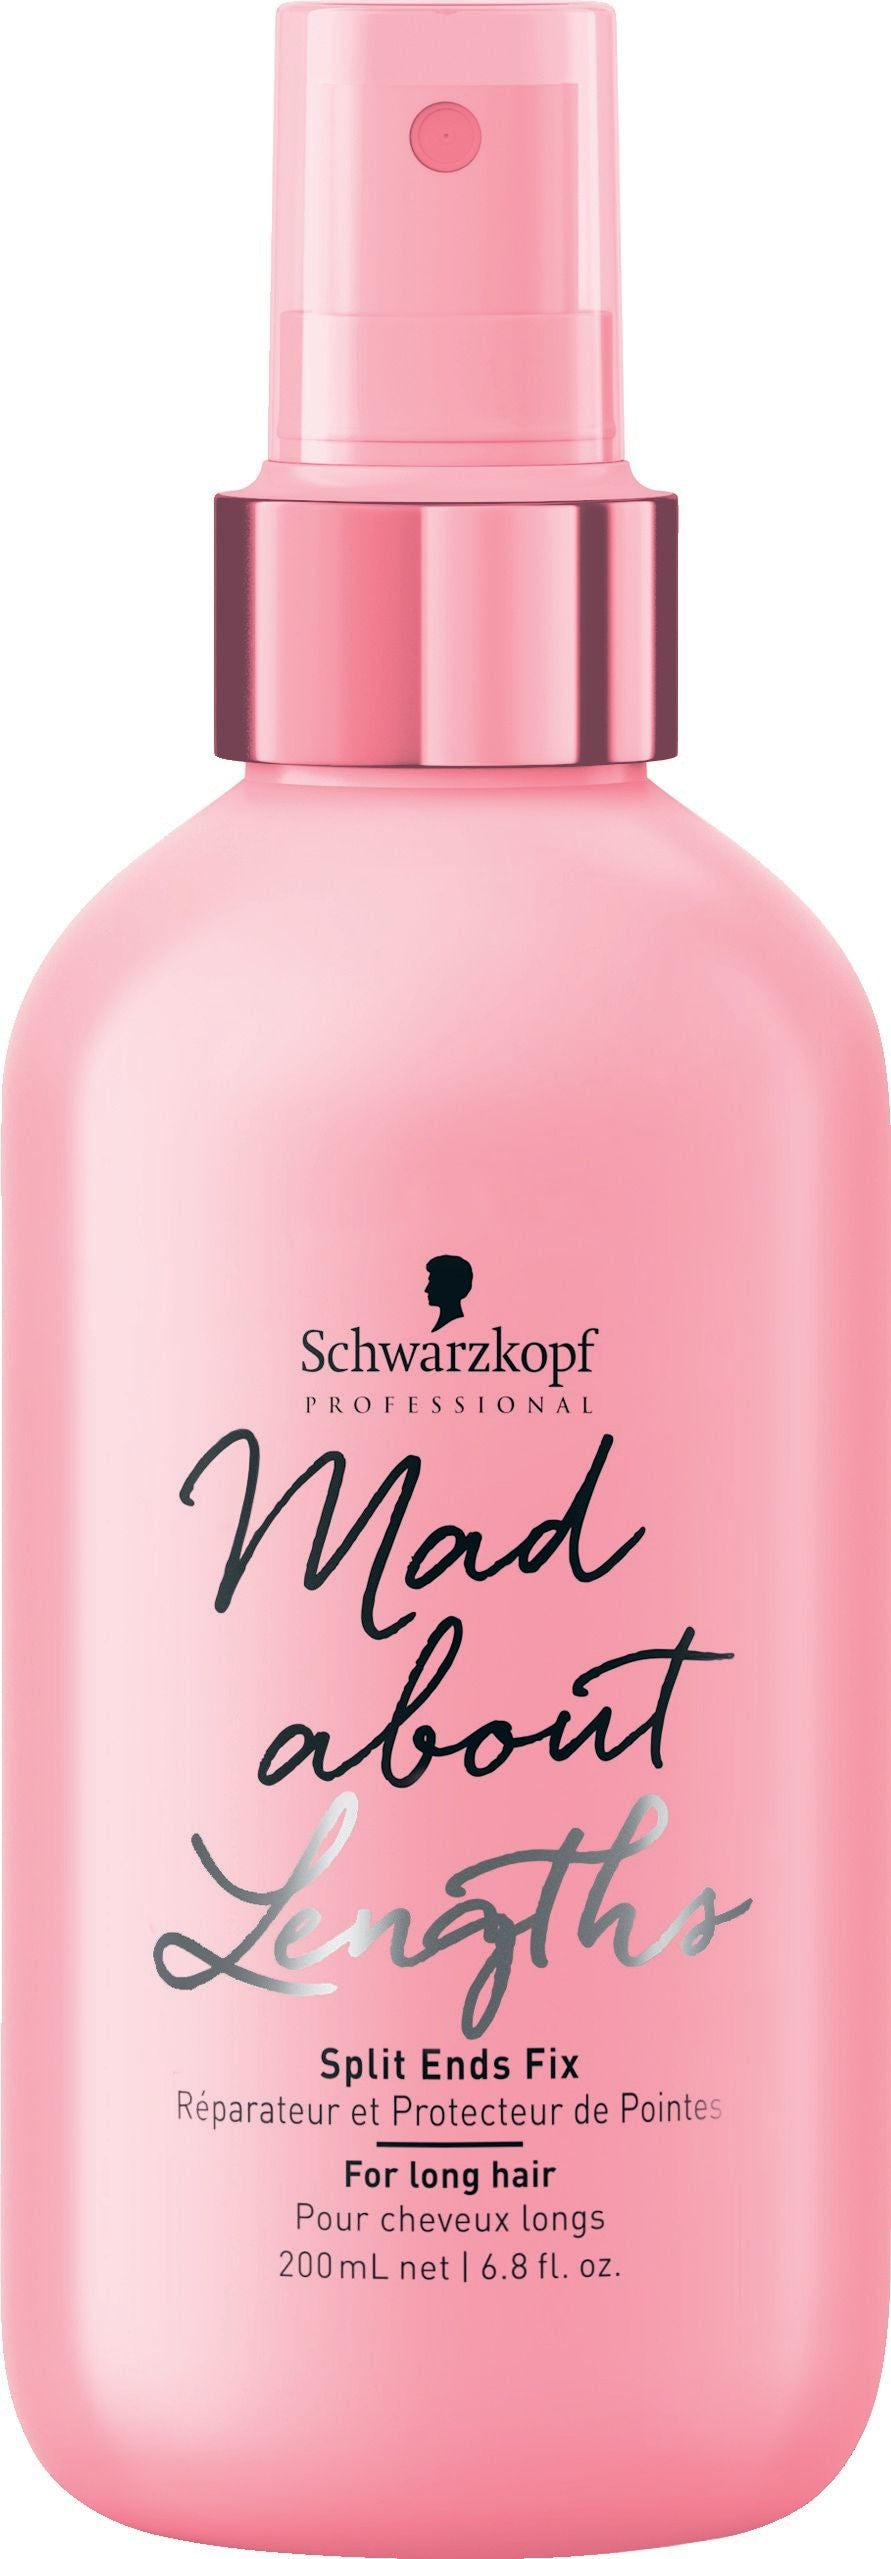 Split Ends Fix - Schwarzkopf Professional Mad About Lengths